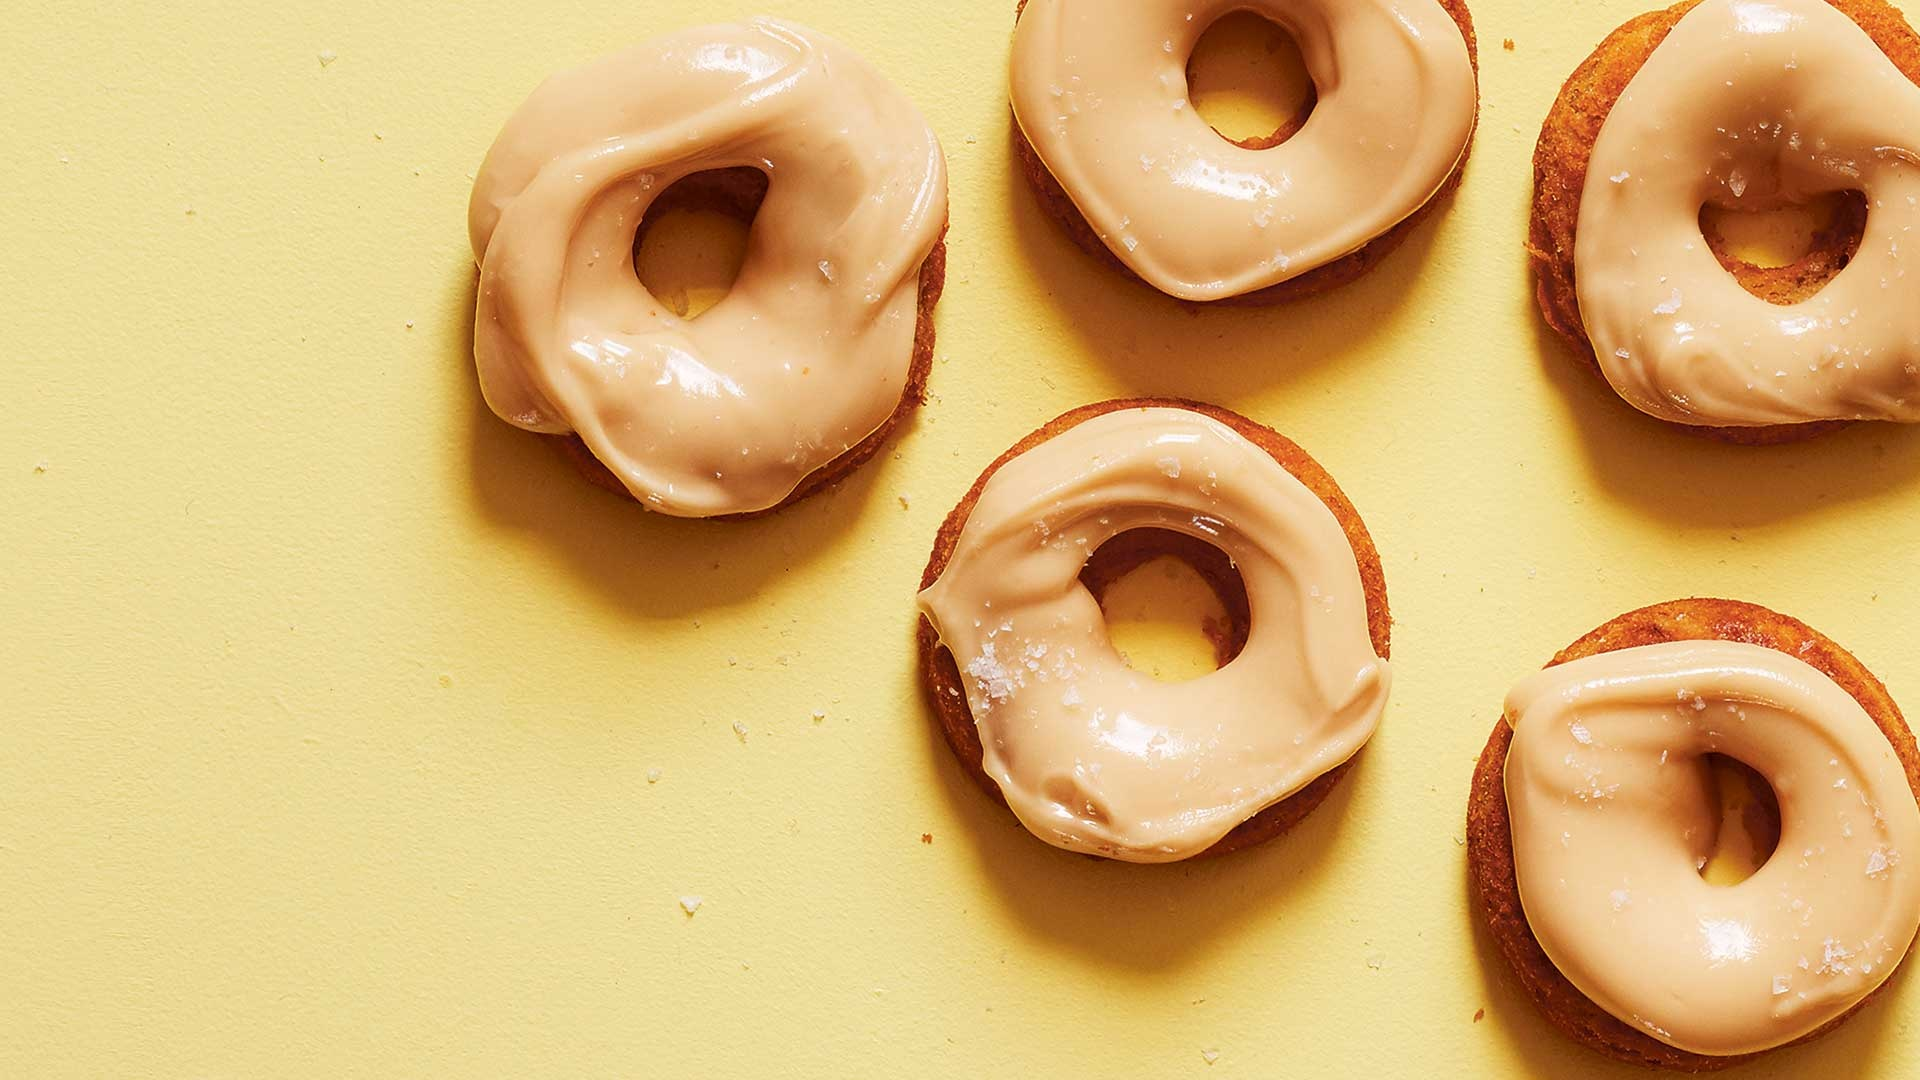 Banana bread and maple syrup baked donuts; photograph: Joe Woodhouse